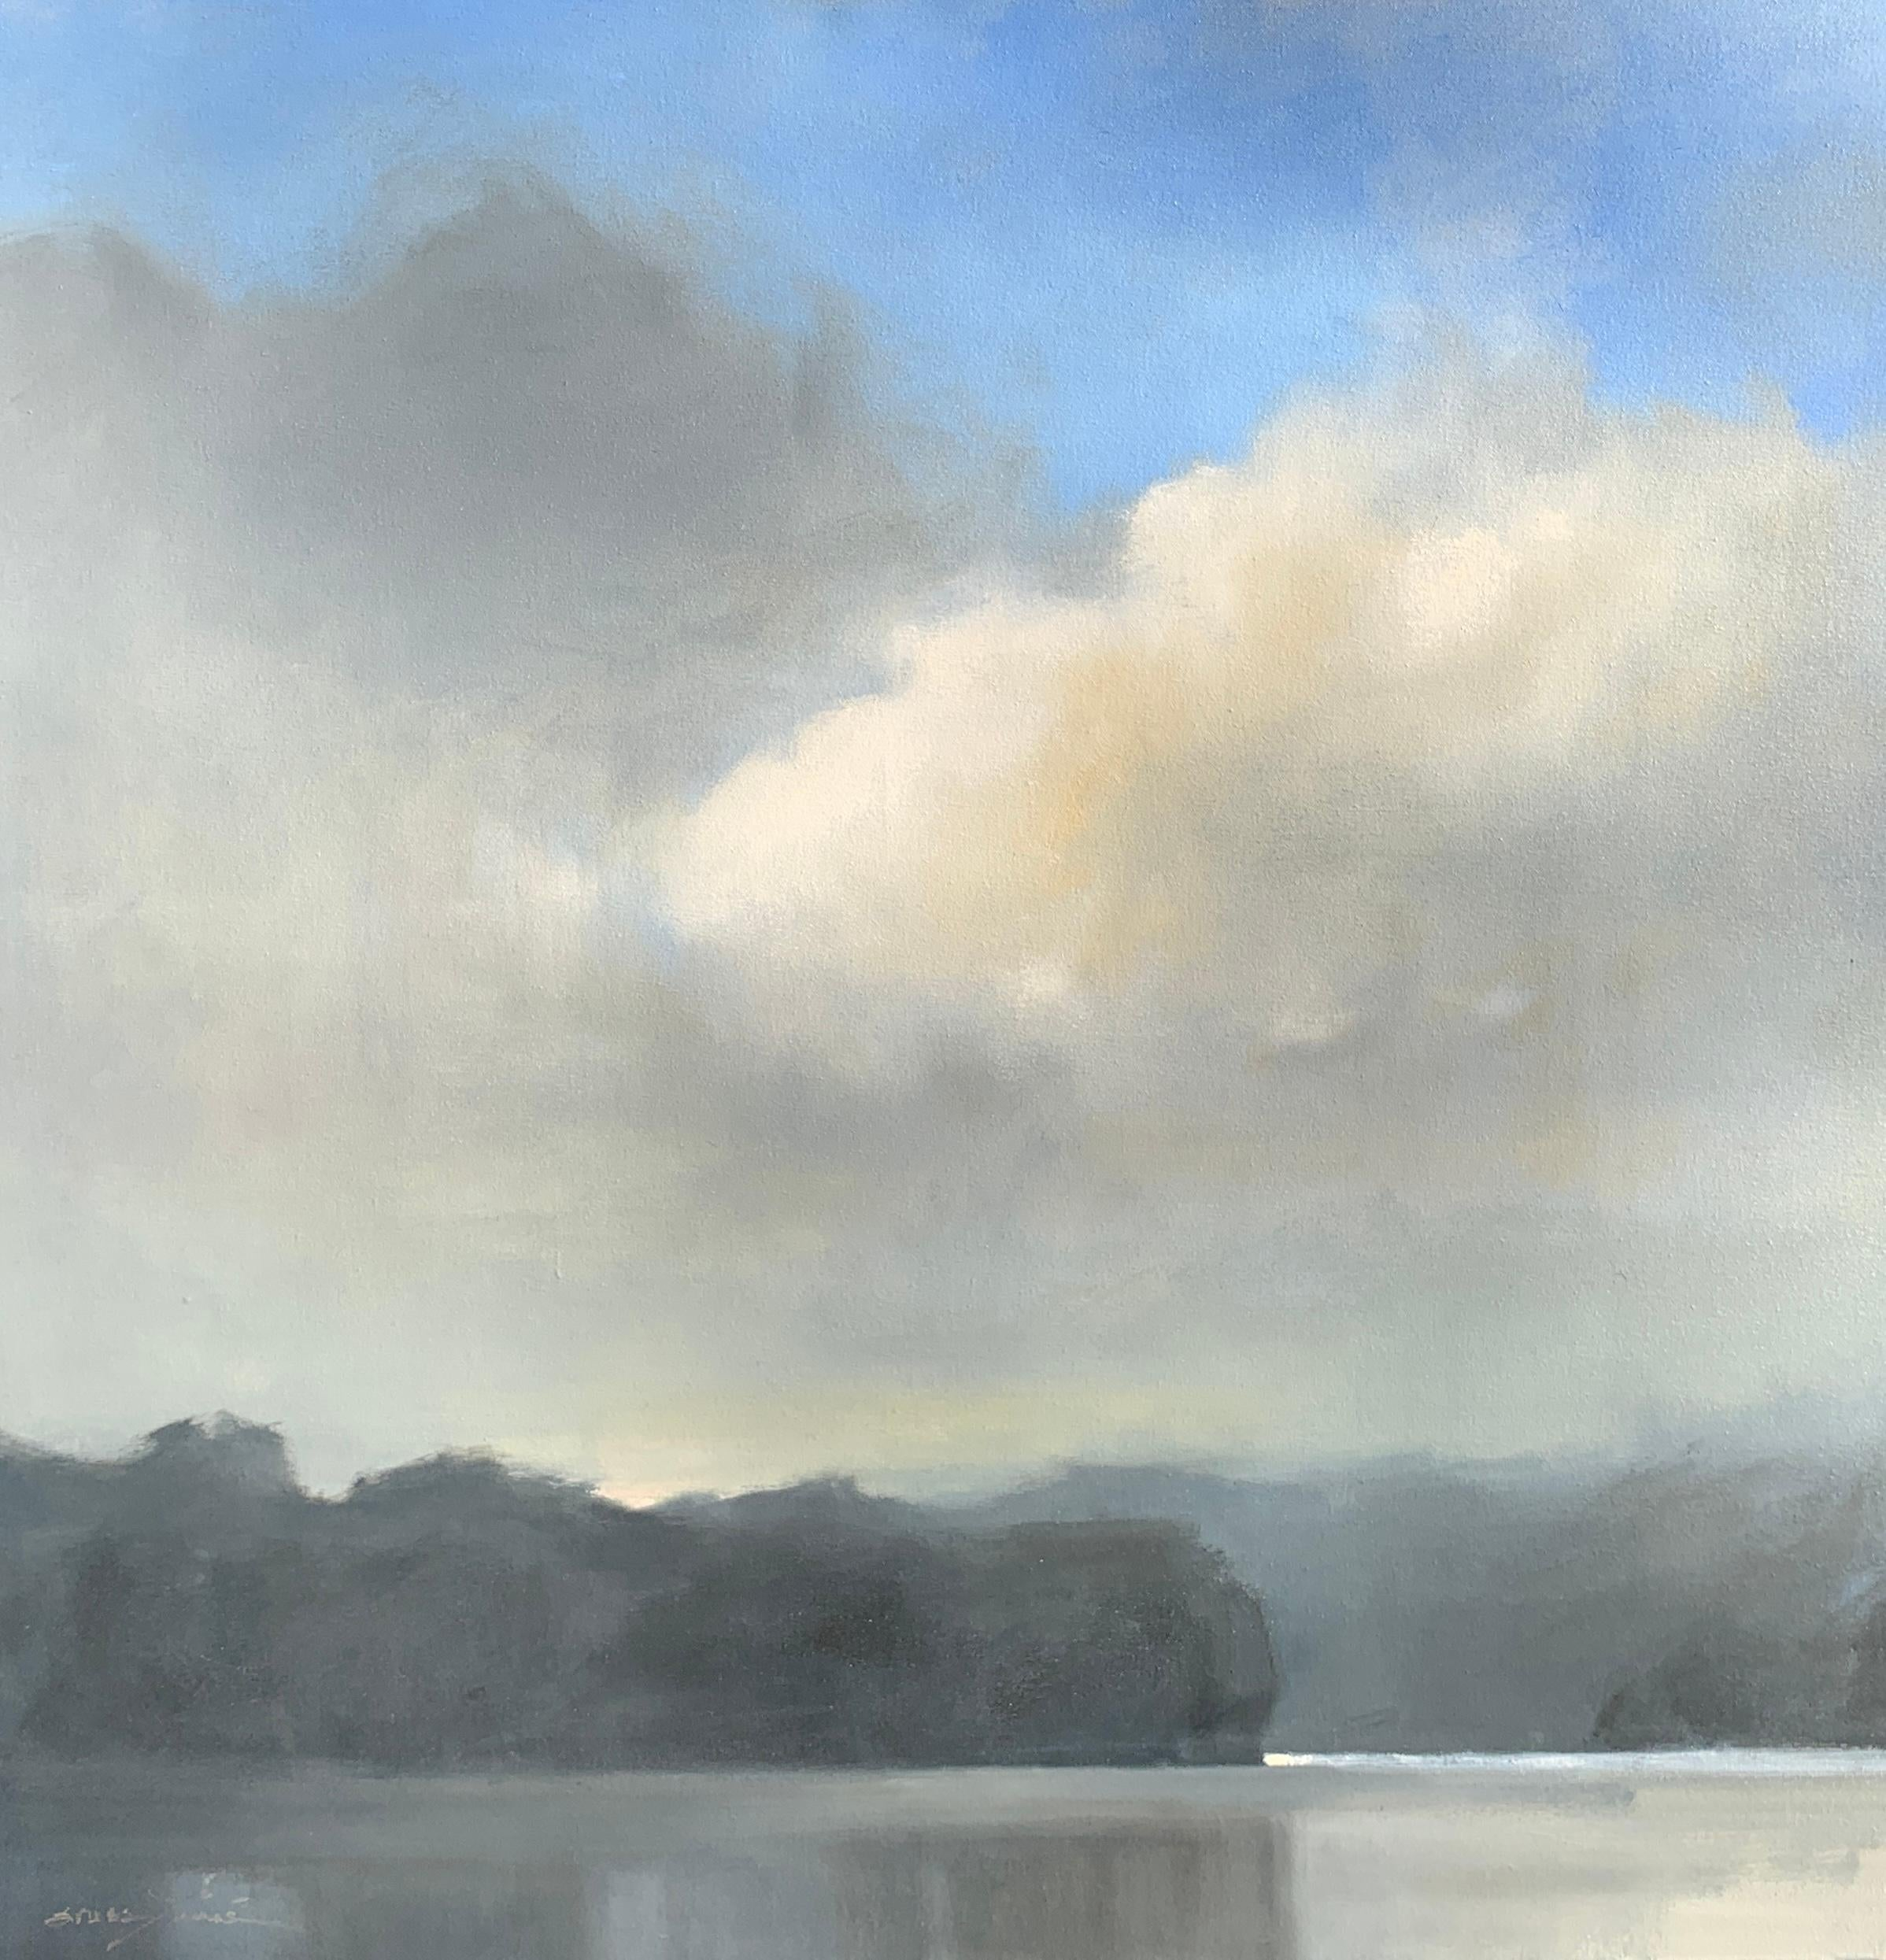 Breaking Storm by Sherrie Russ Levine, Large Square Landscape Painting in Blue